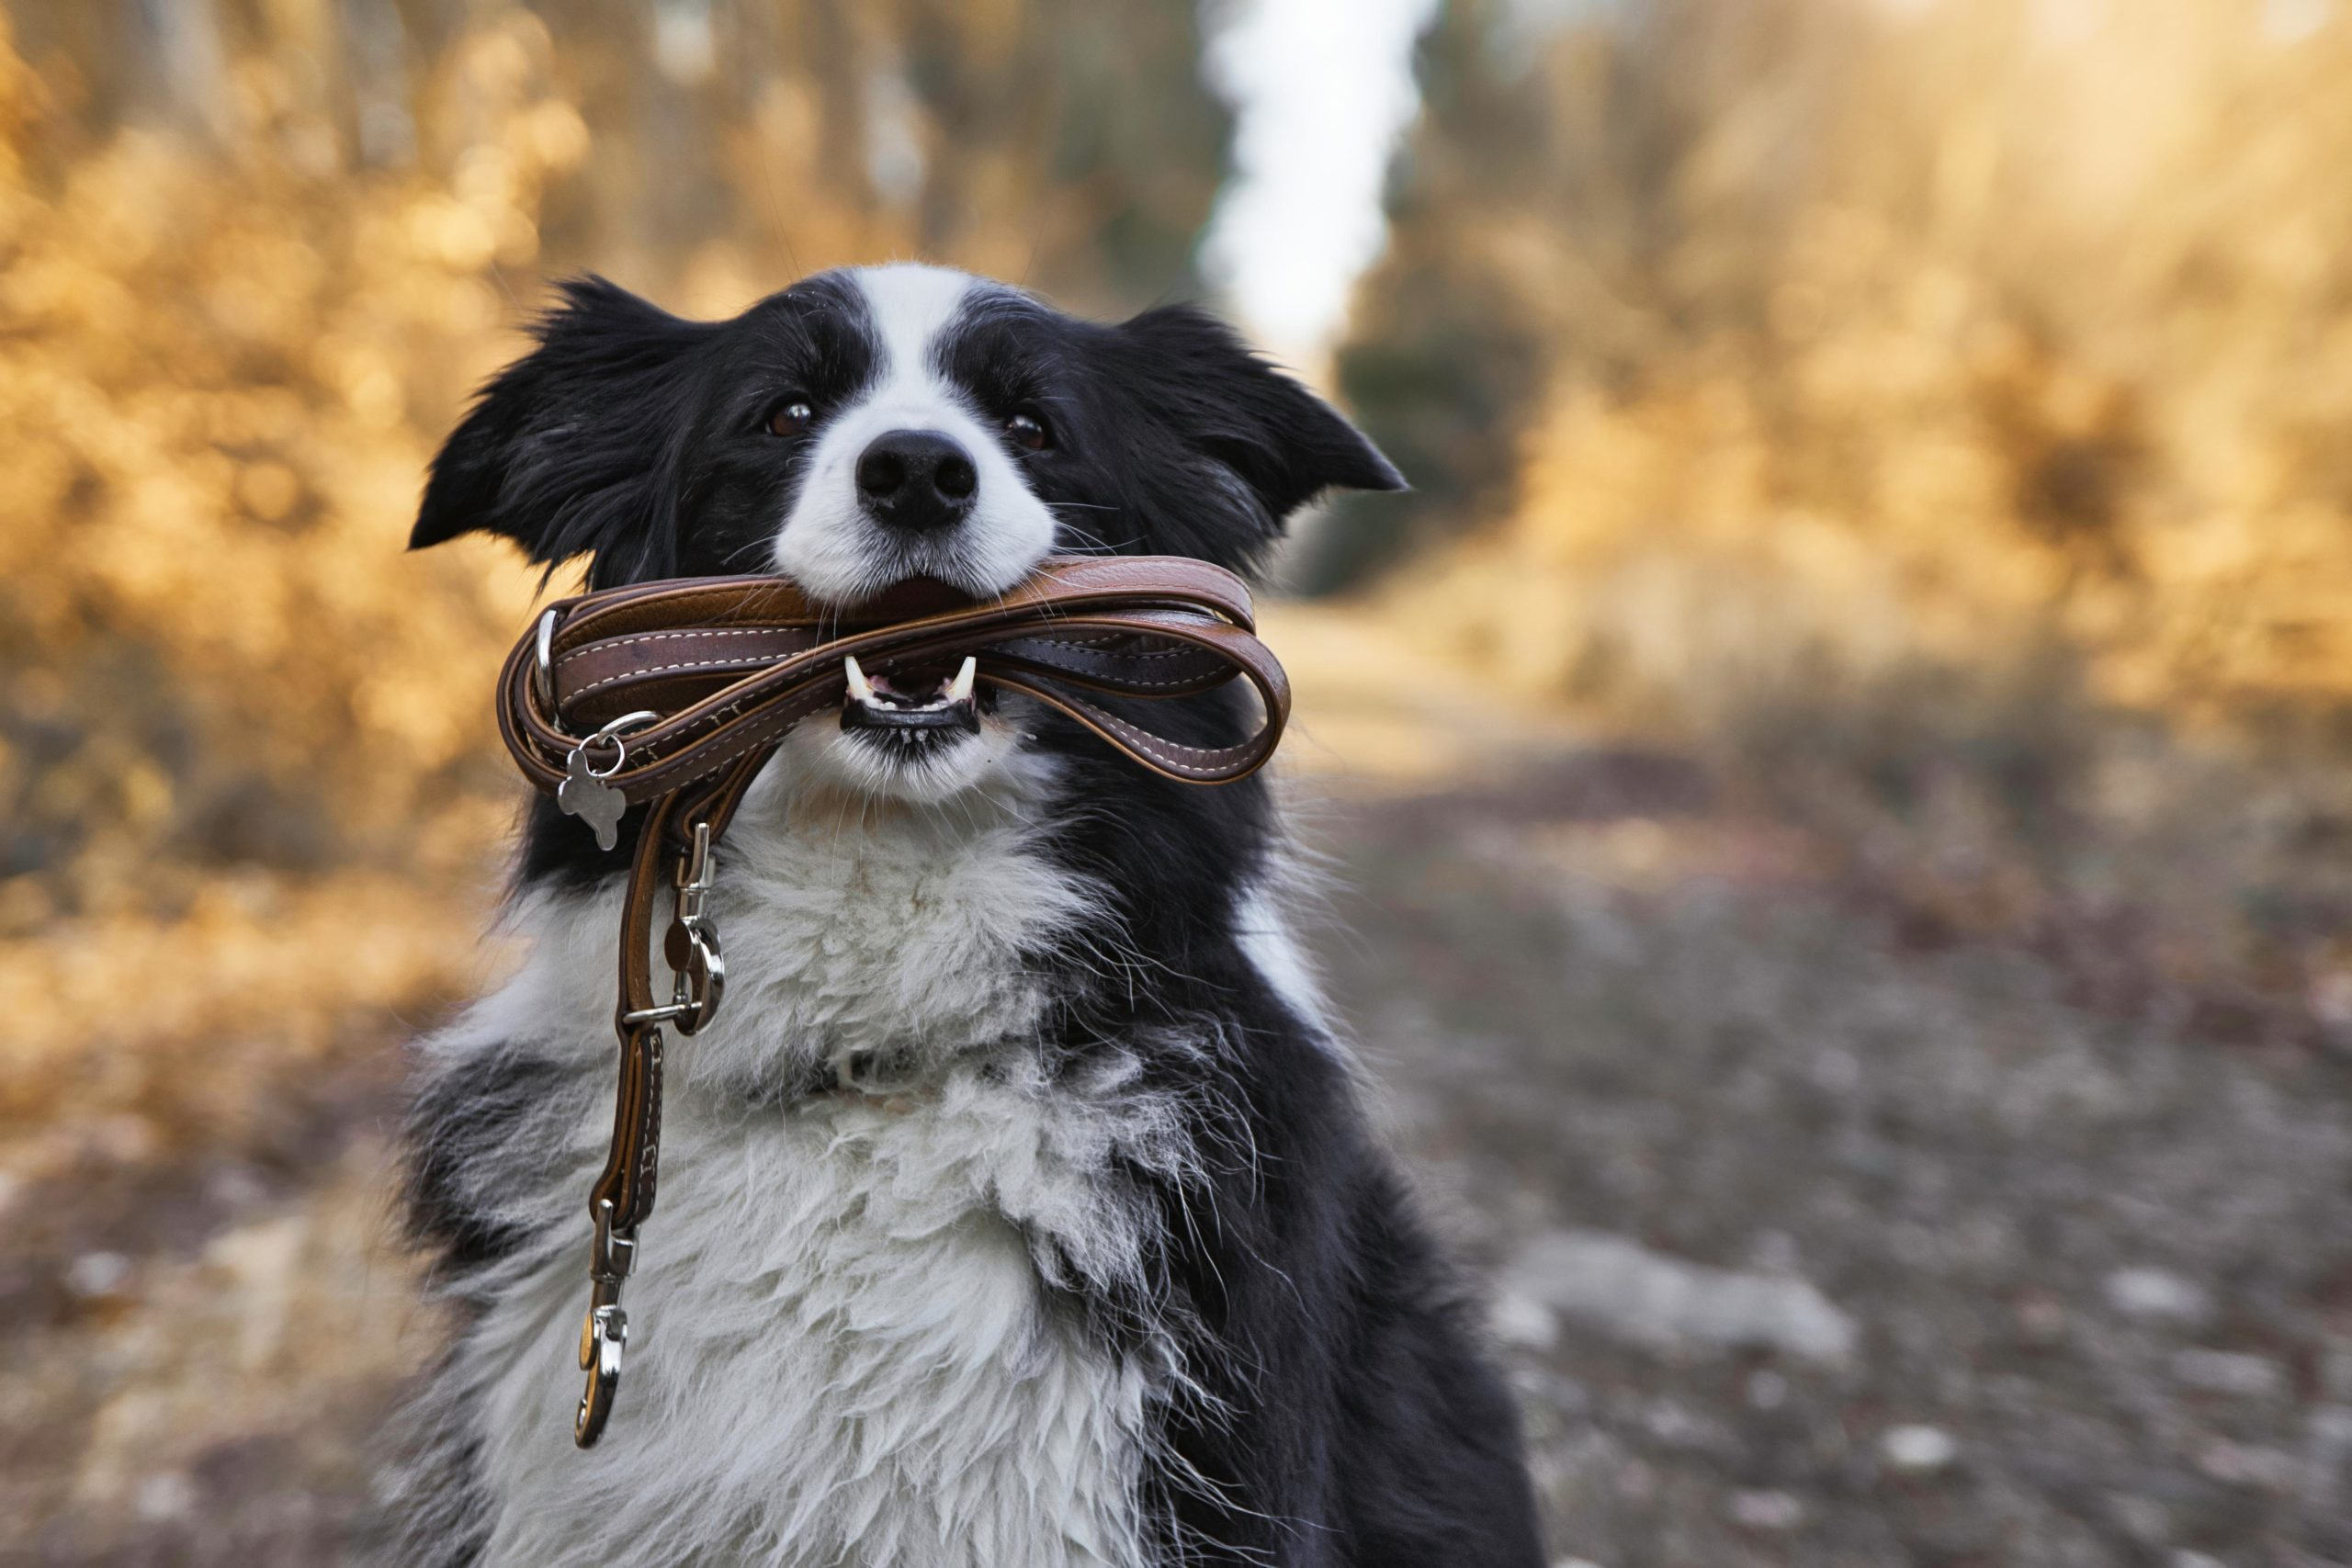 Dog with its leash in its mouth